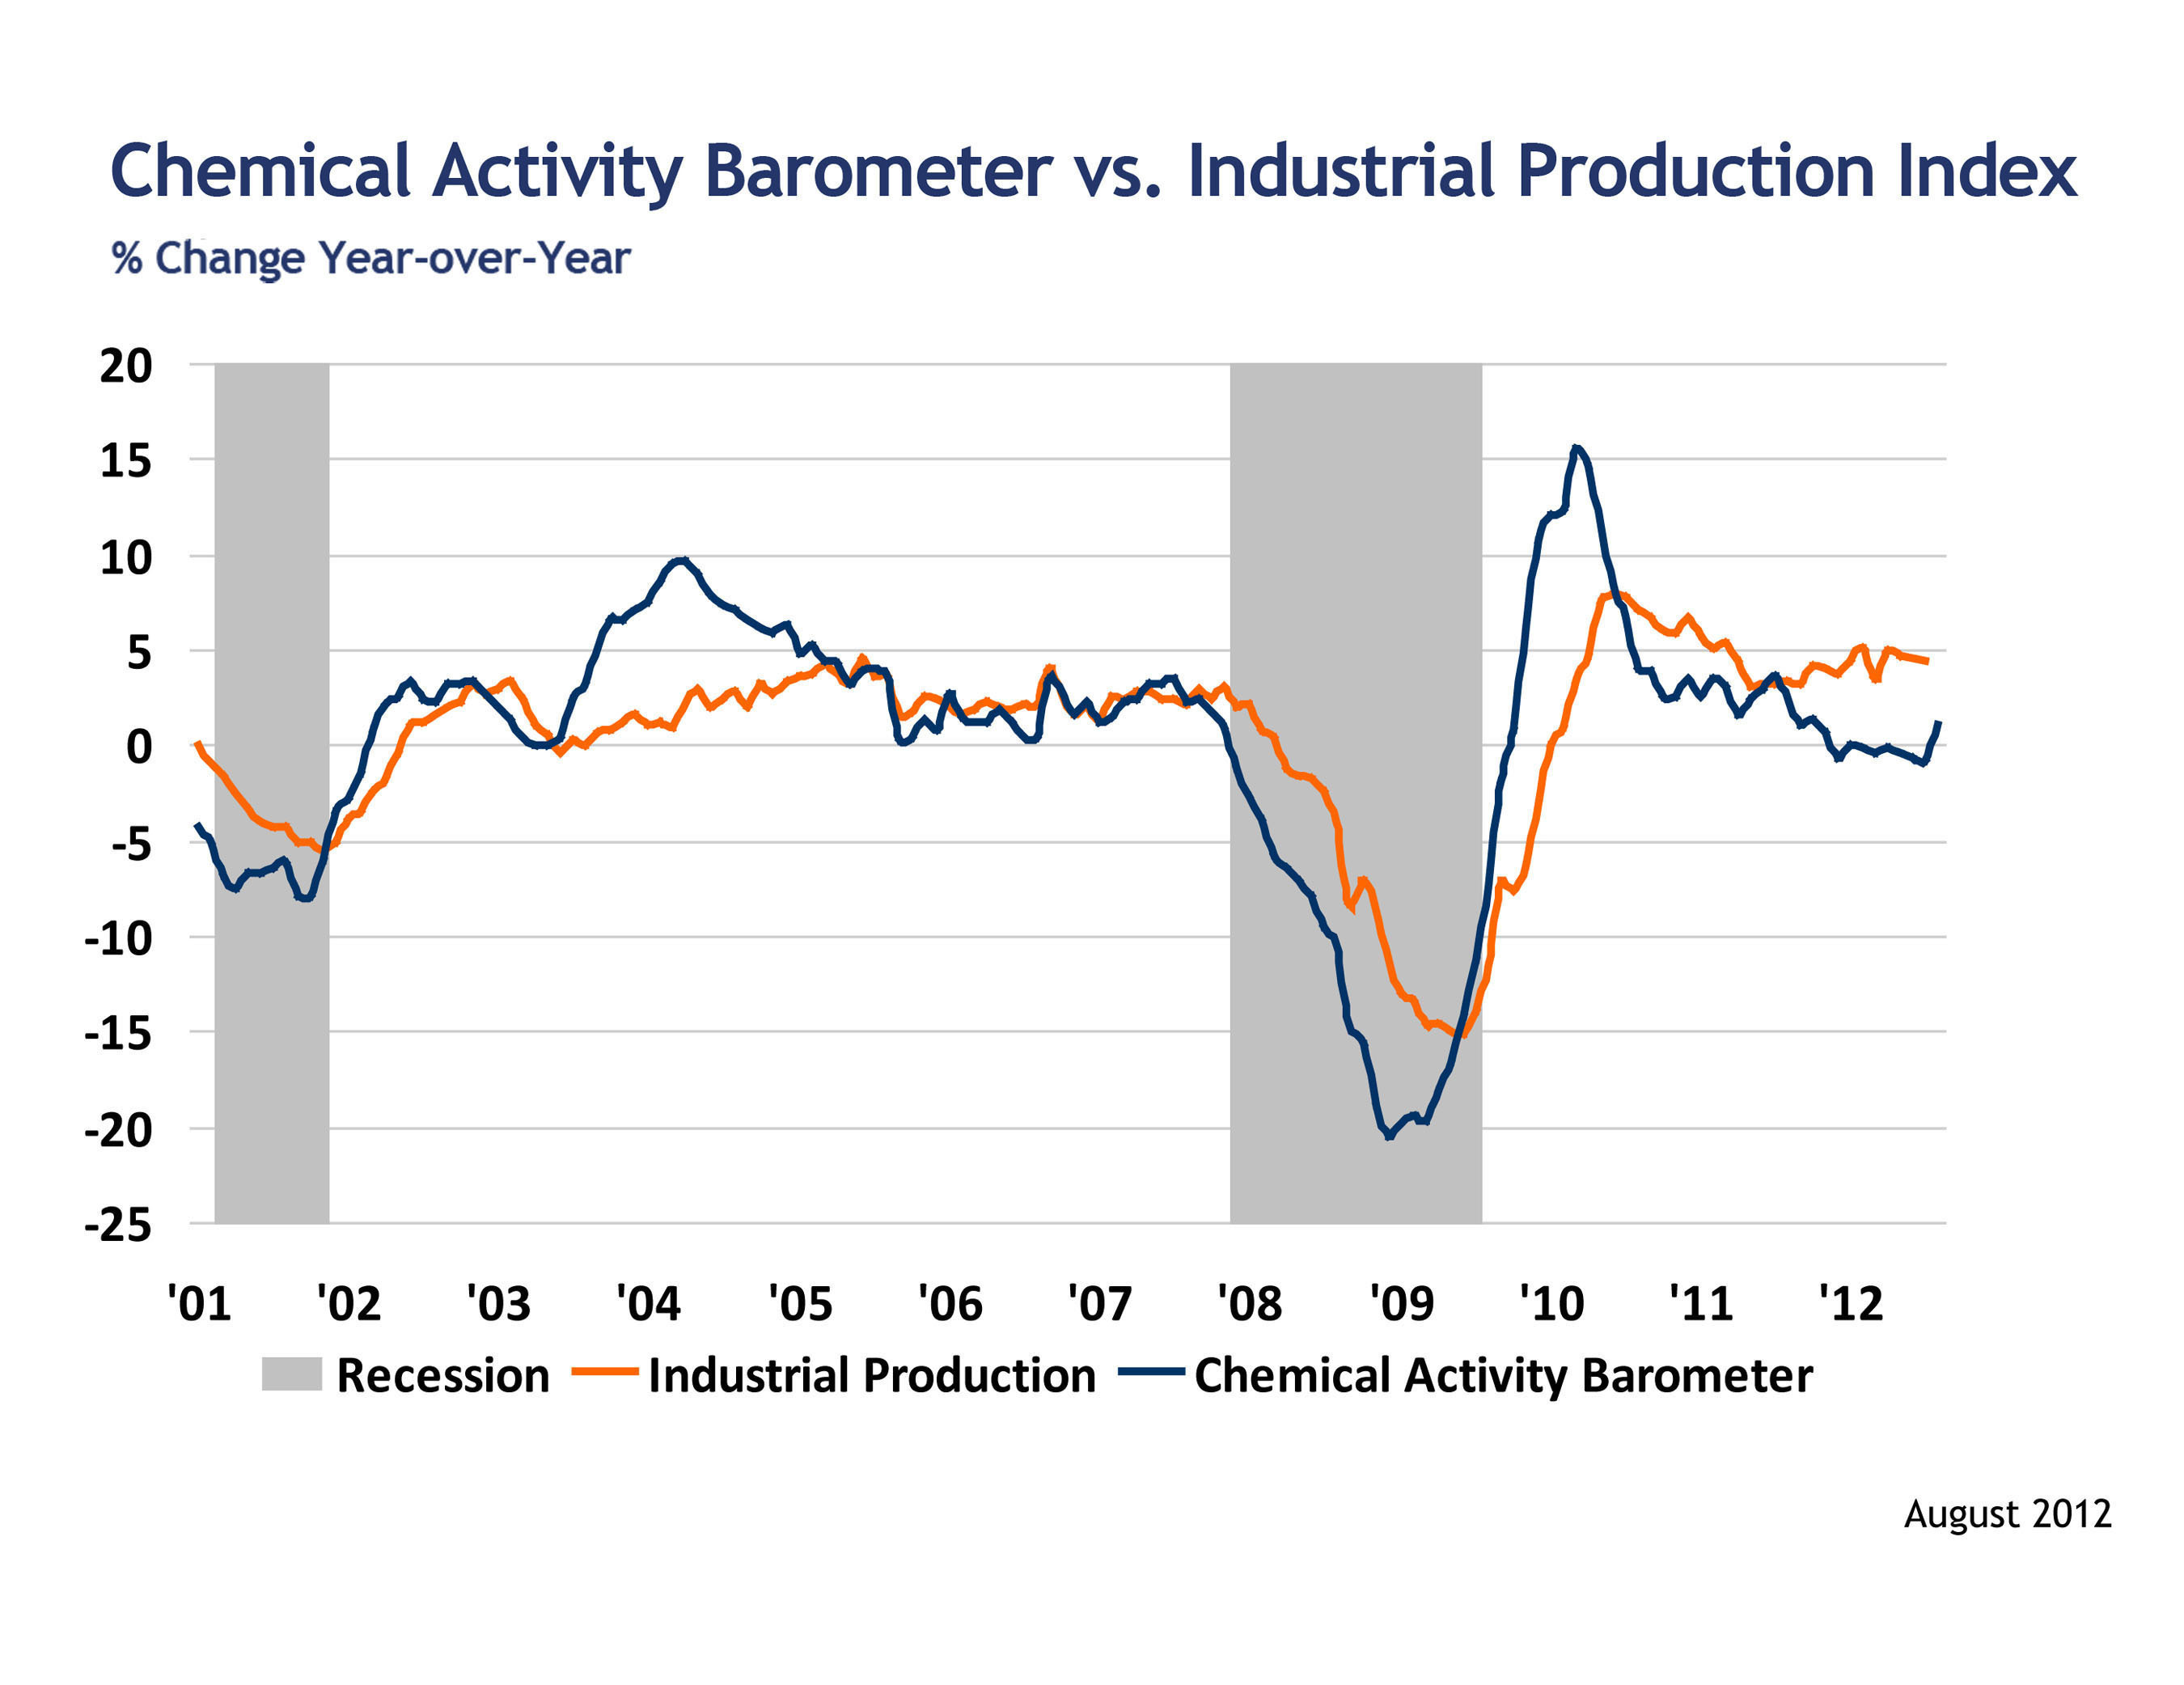 American Chemistry Council Releases August Chemical Activity Barometer